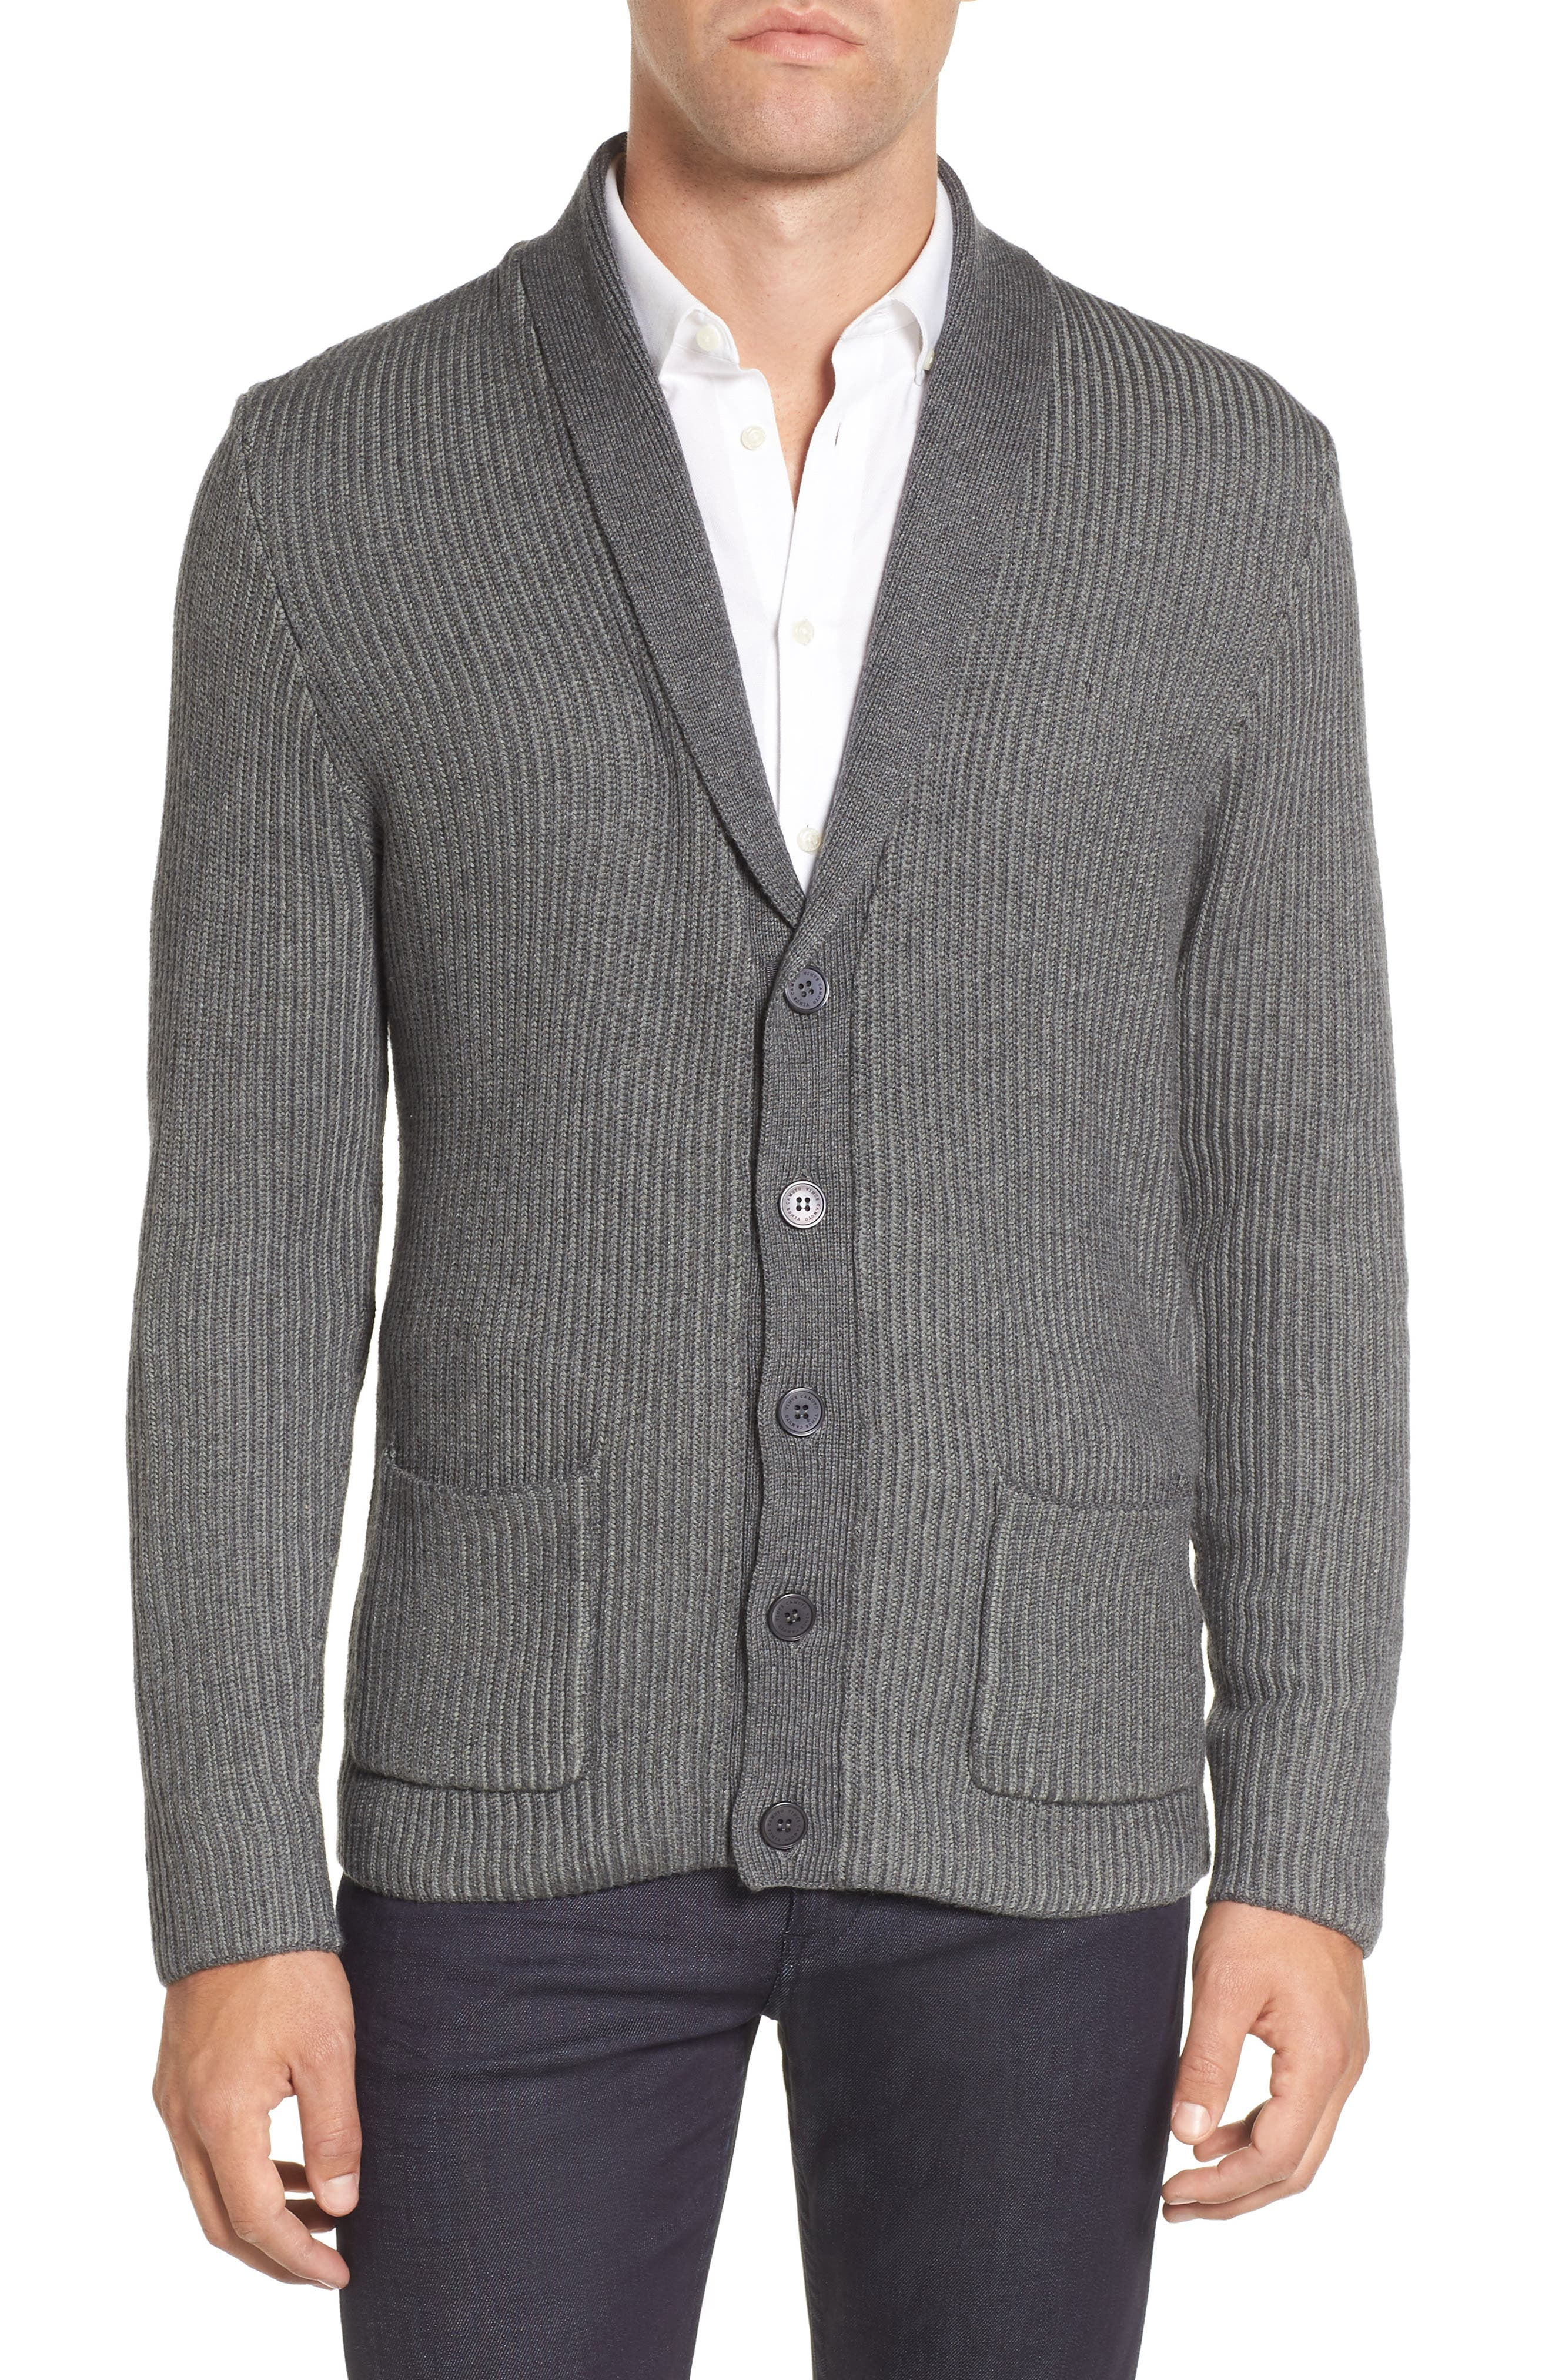 Alternate Image 1 Selected - Vince Camuto Slim Shawl Collar Cardigan